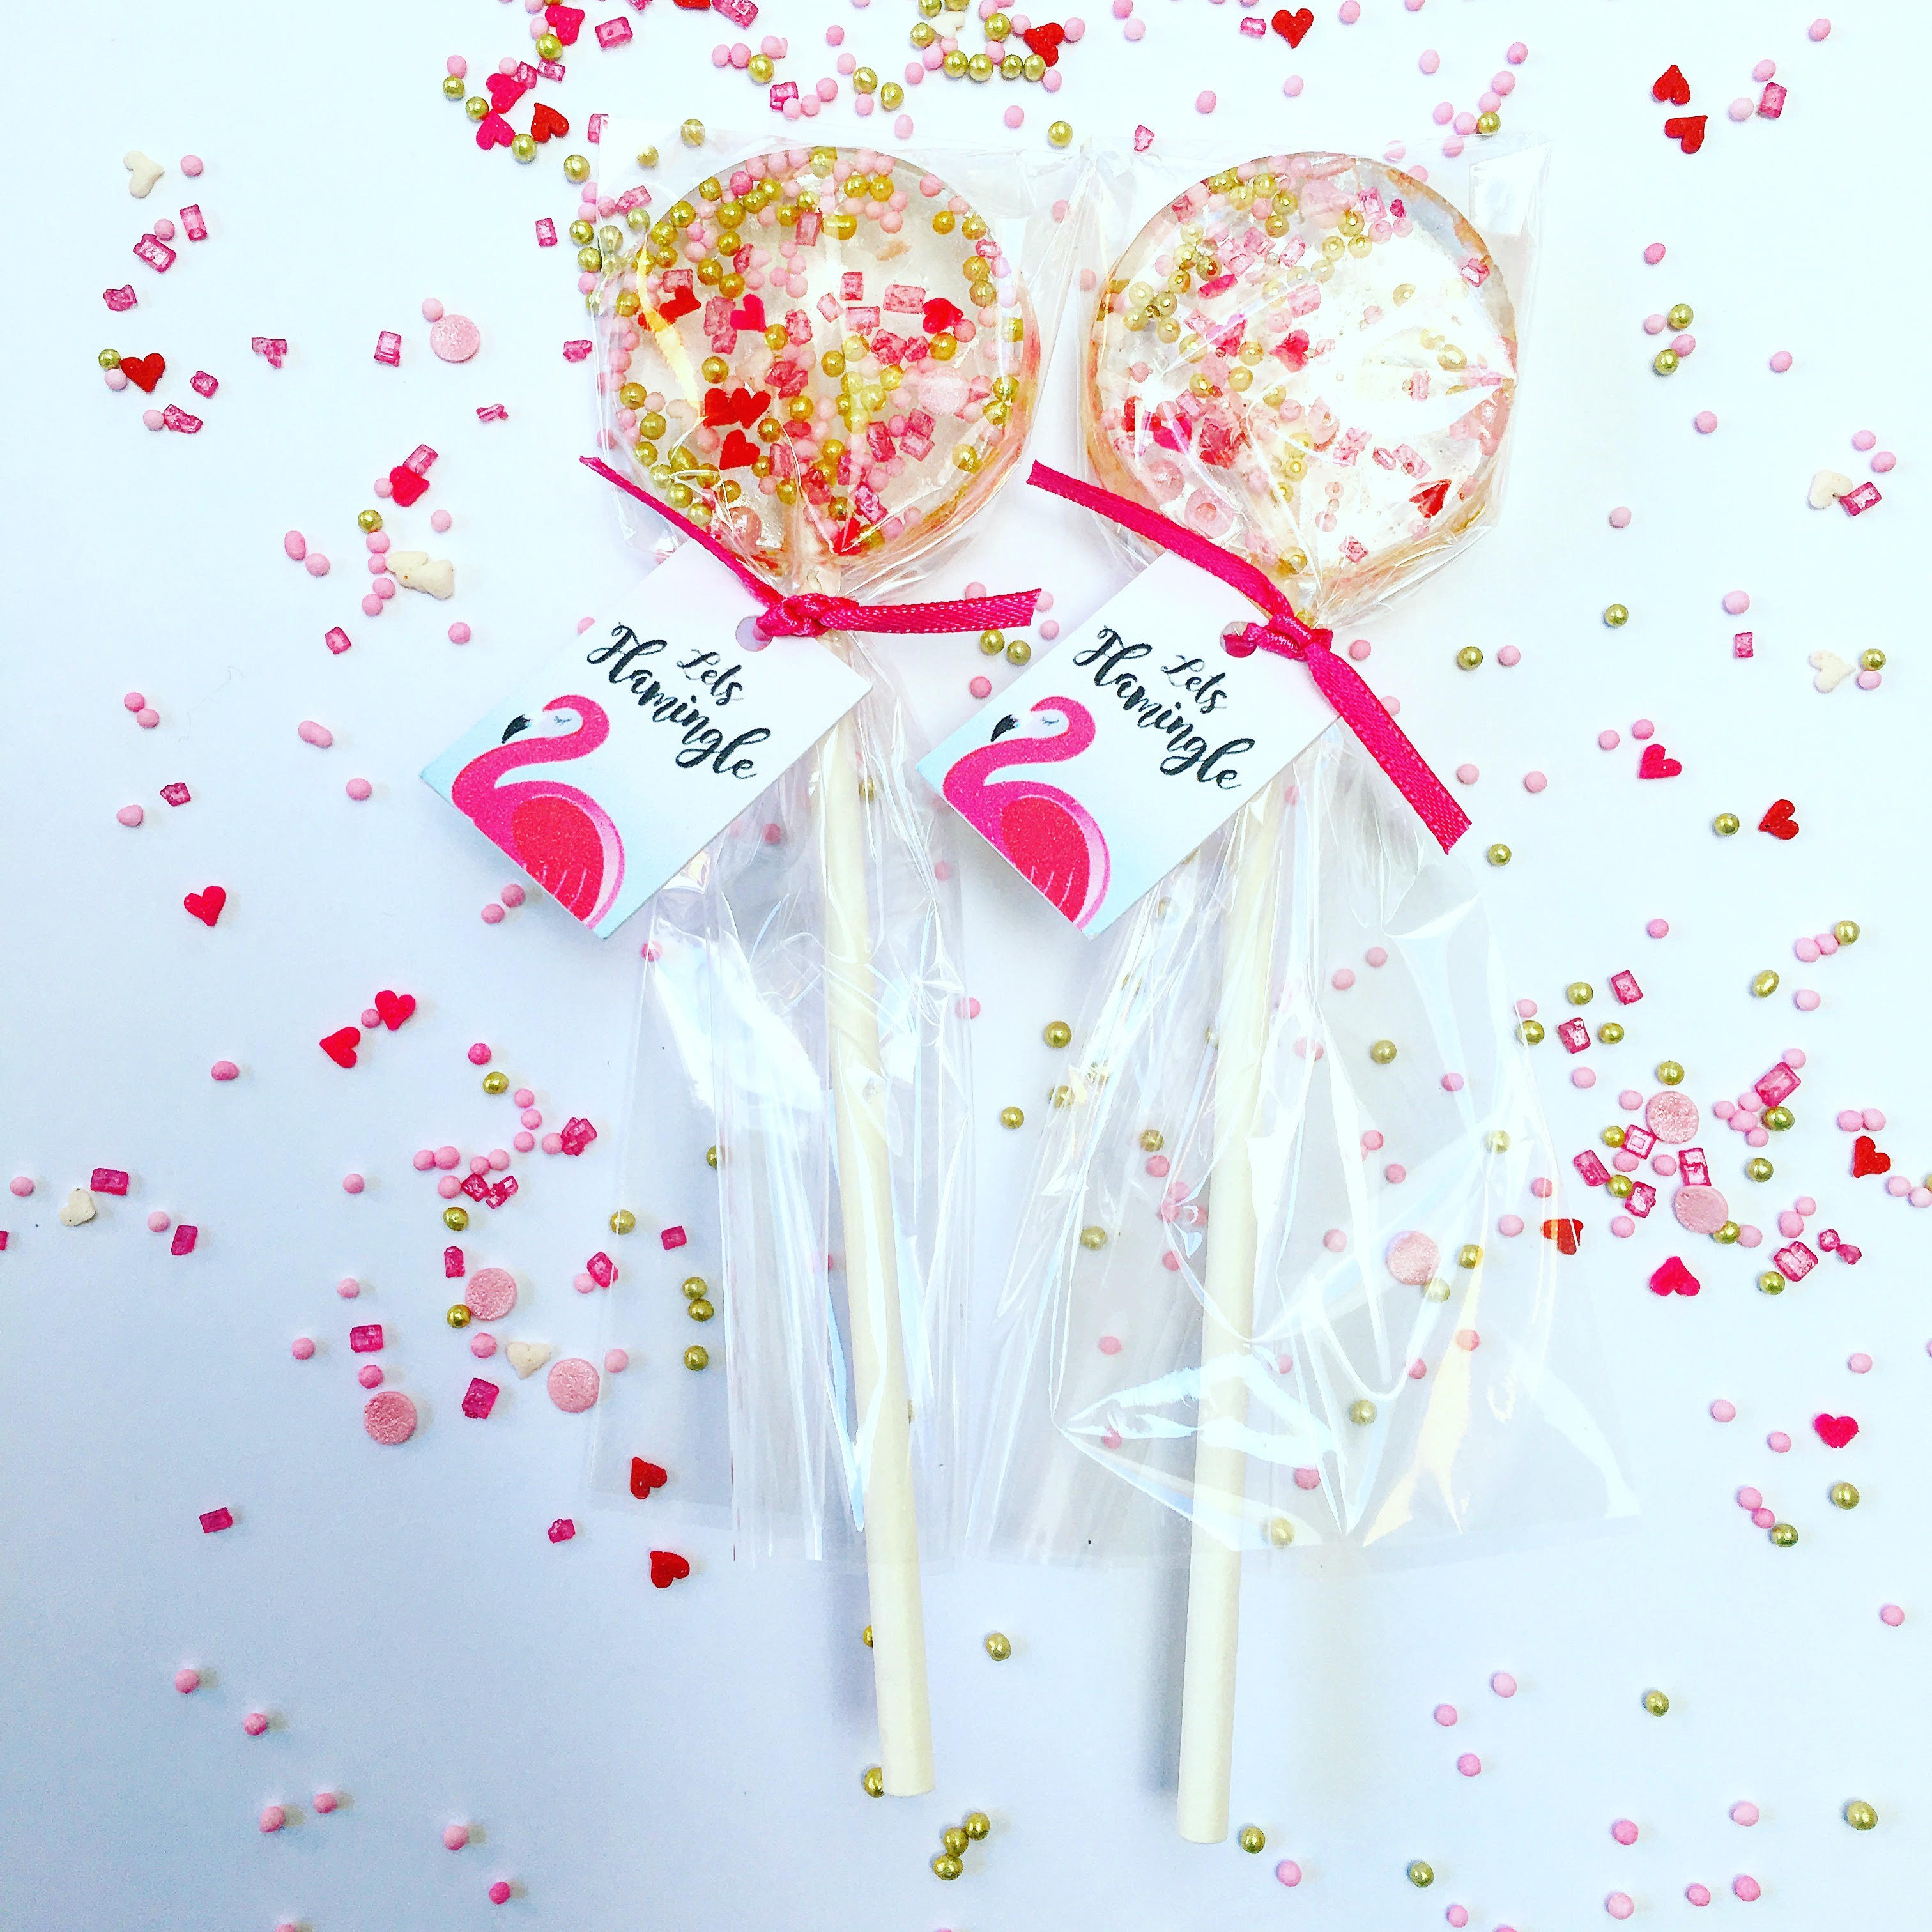 Party Bag Ideas; handmade lollipops by Willow and boo